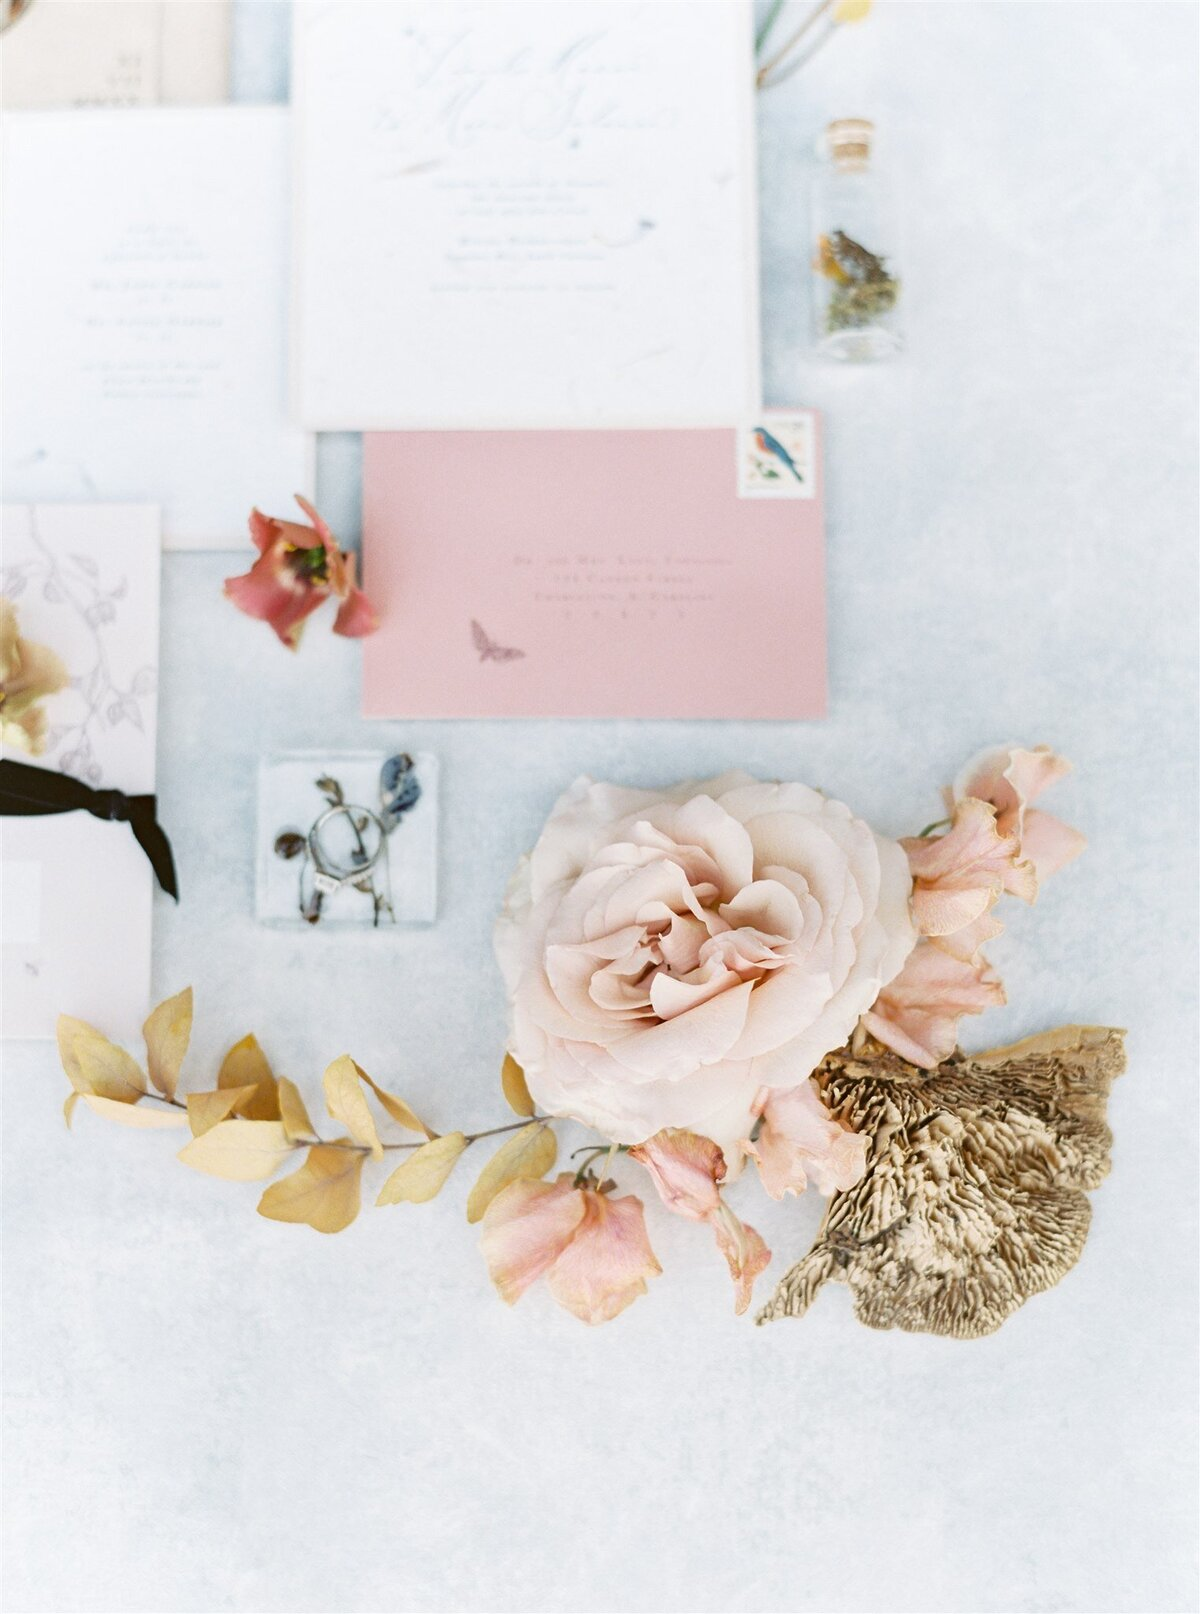 Hotel Domestique Wedding Editorial_Lauren Fair_001